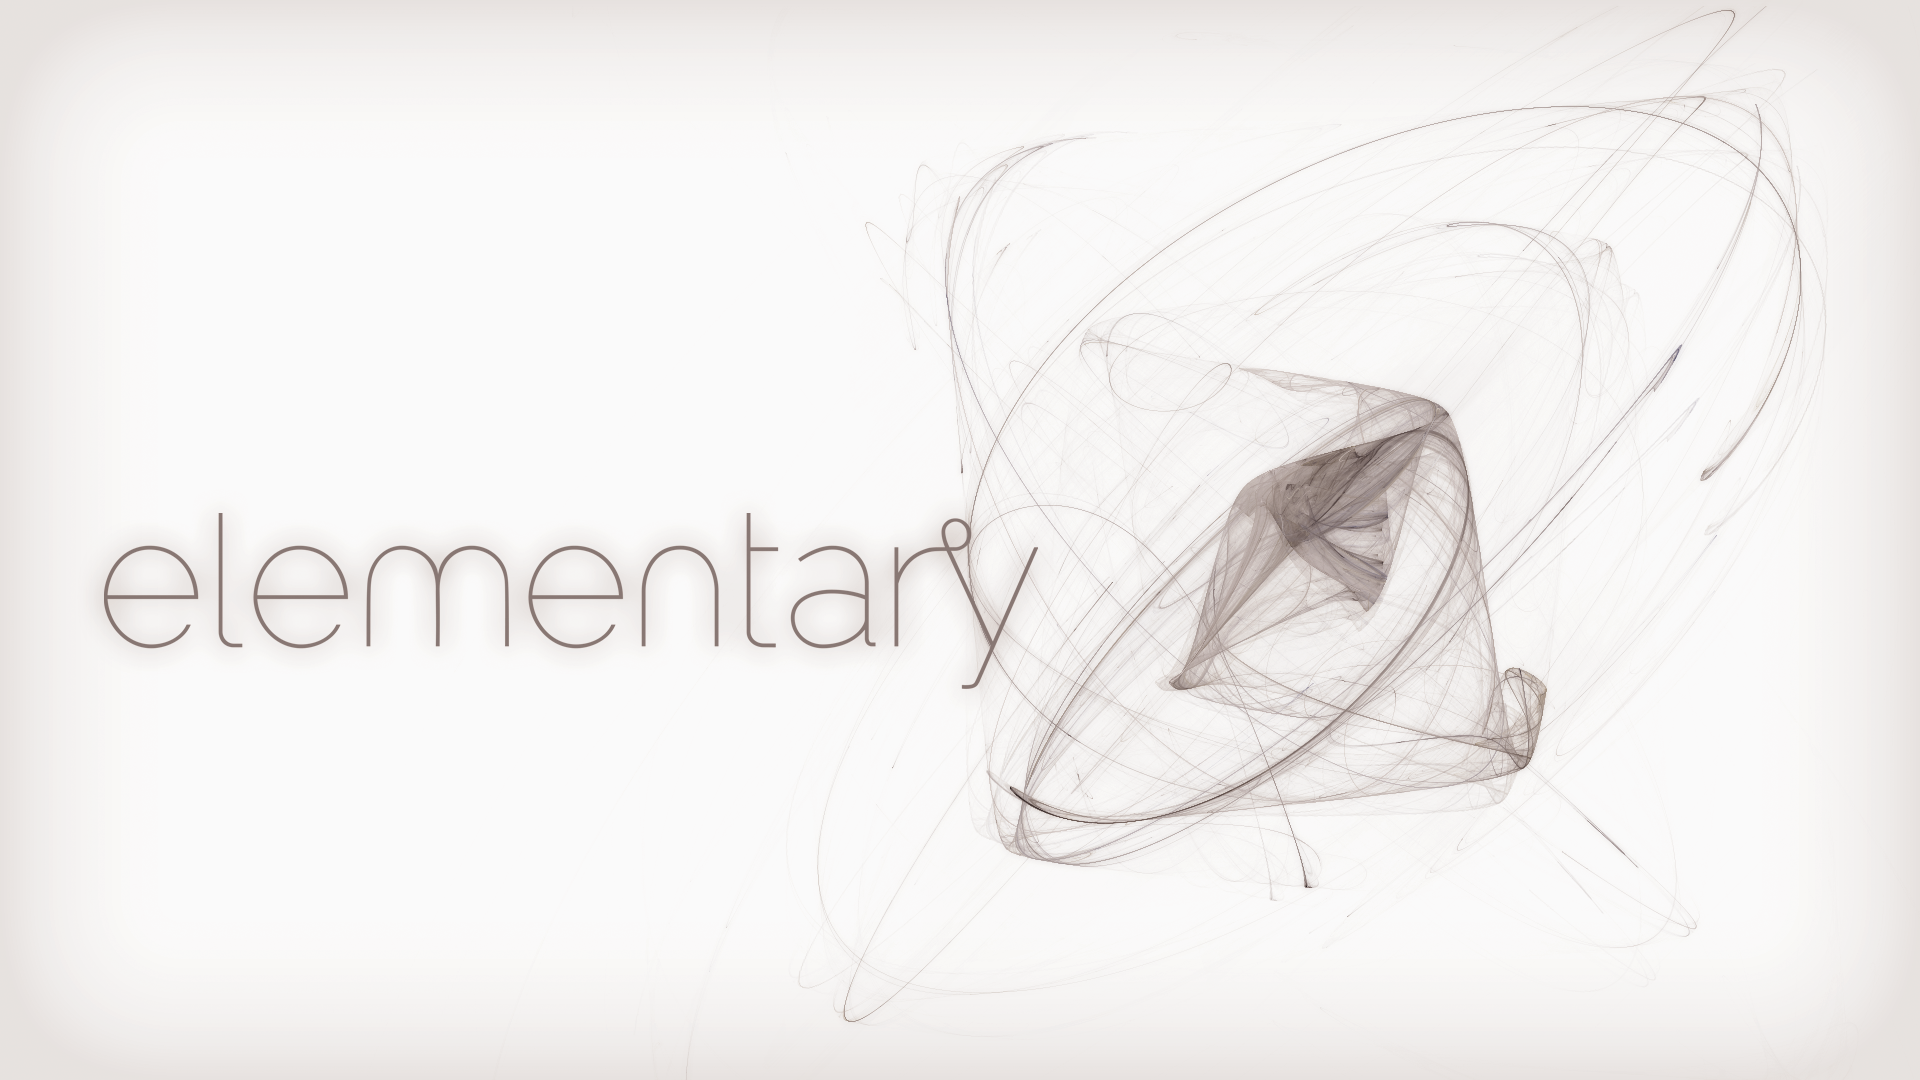 elementary_os_abstract_wallpaper_by_foxi